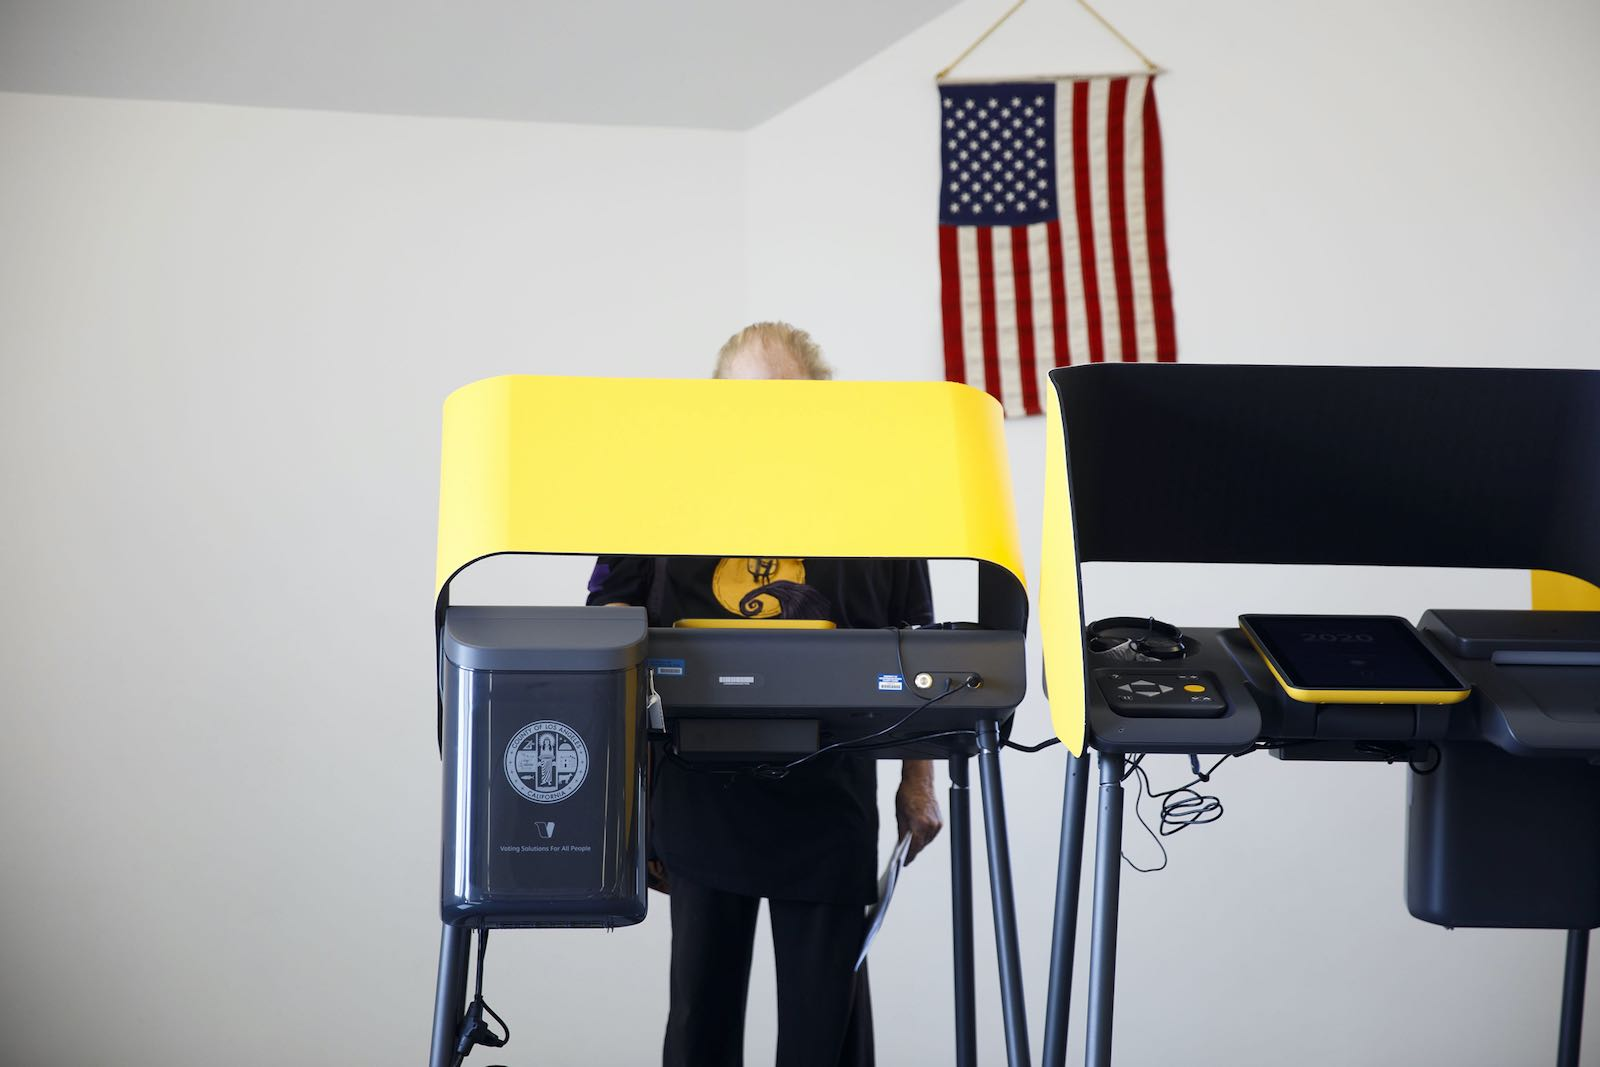 A voter casting a ballot on an electronic device